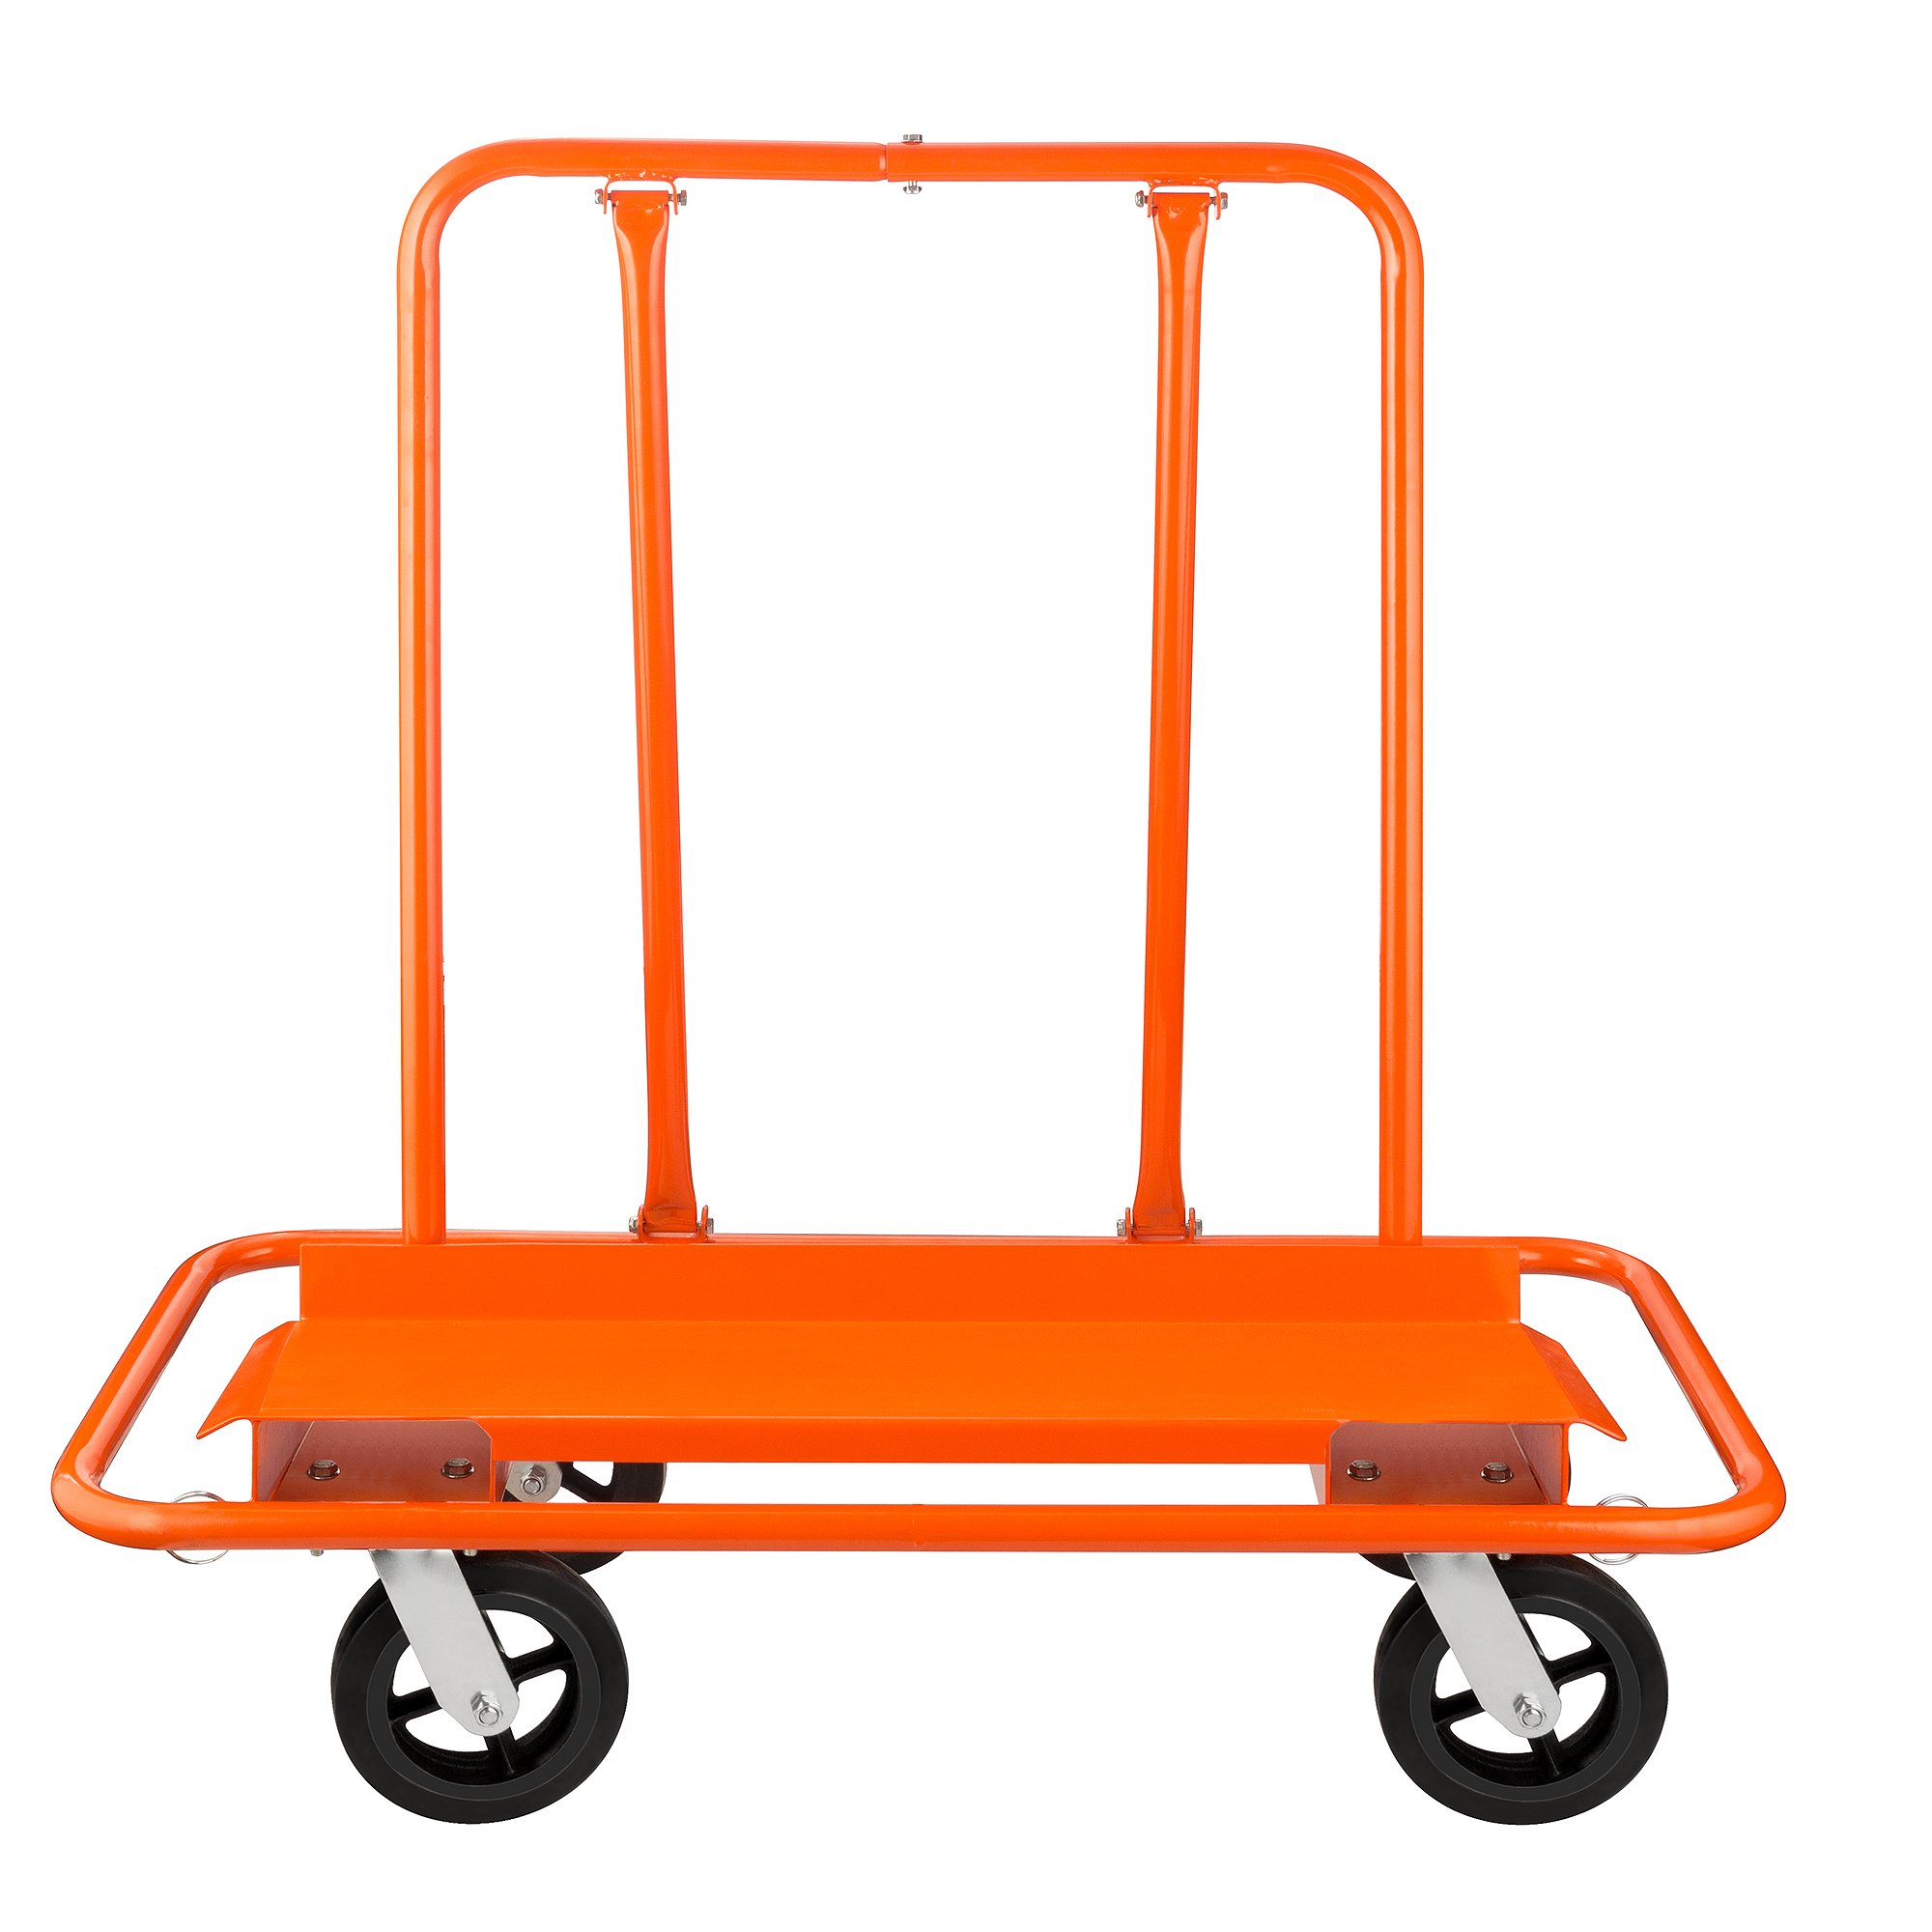 6115 Pentagon Tool Professional Drywall Cart Dolly For Handling Wall Panels by Pentagon Tools